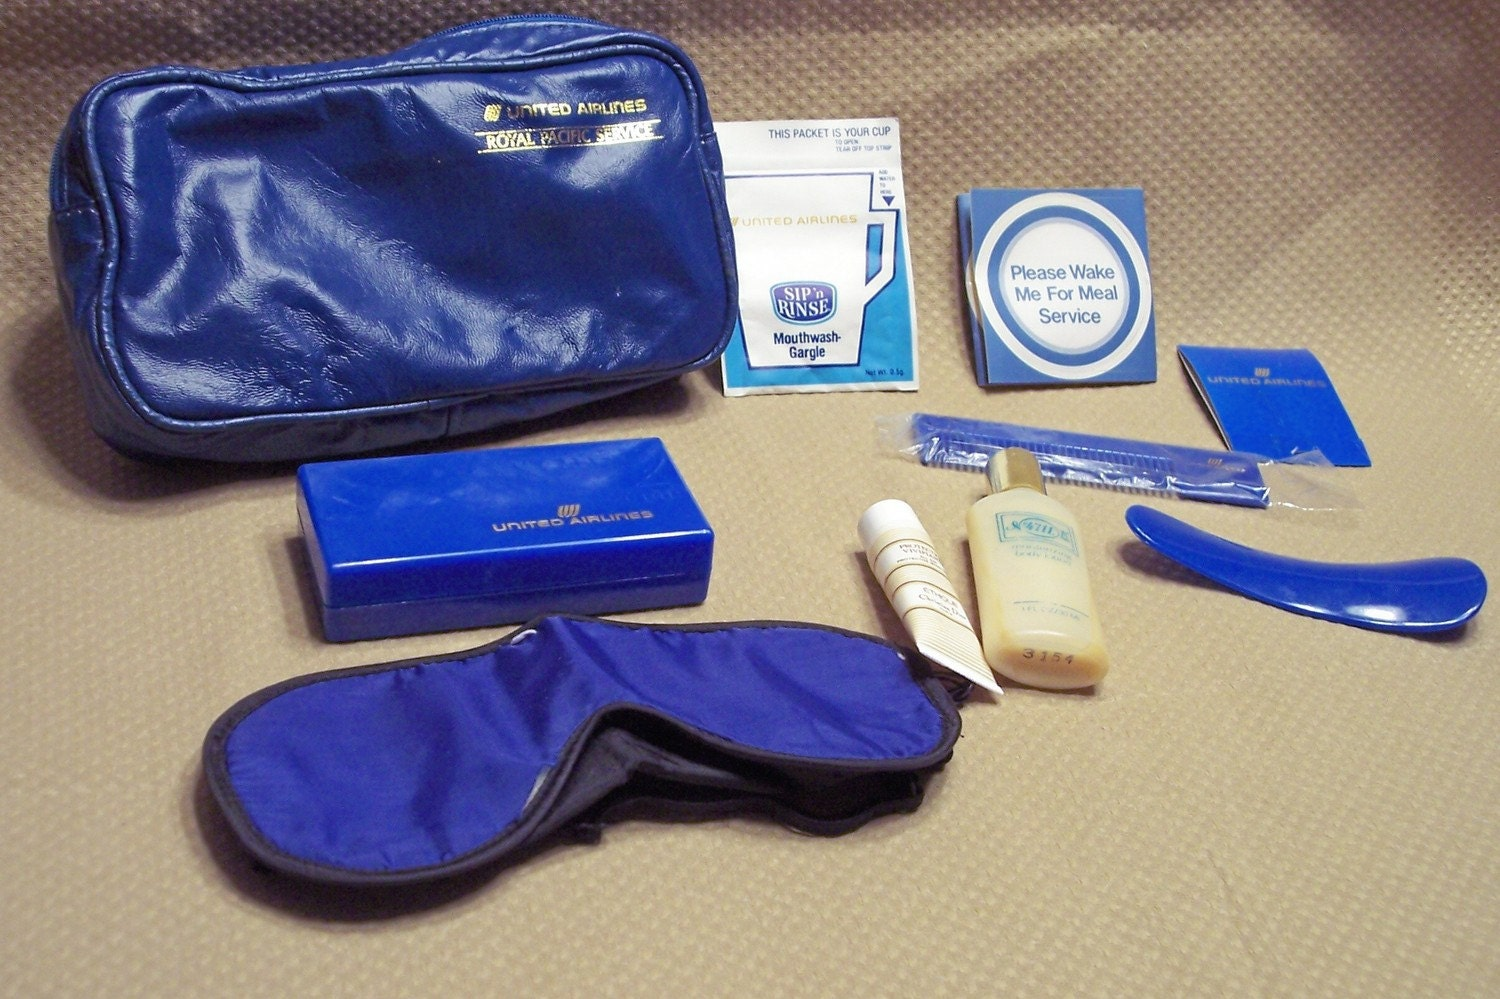 Vintage Airline Kit - United Airlines Toiletries